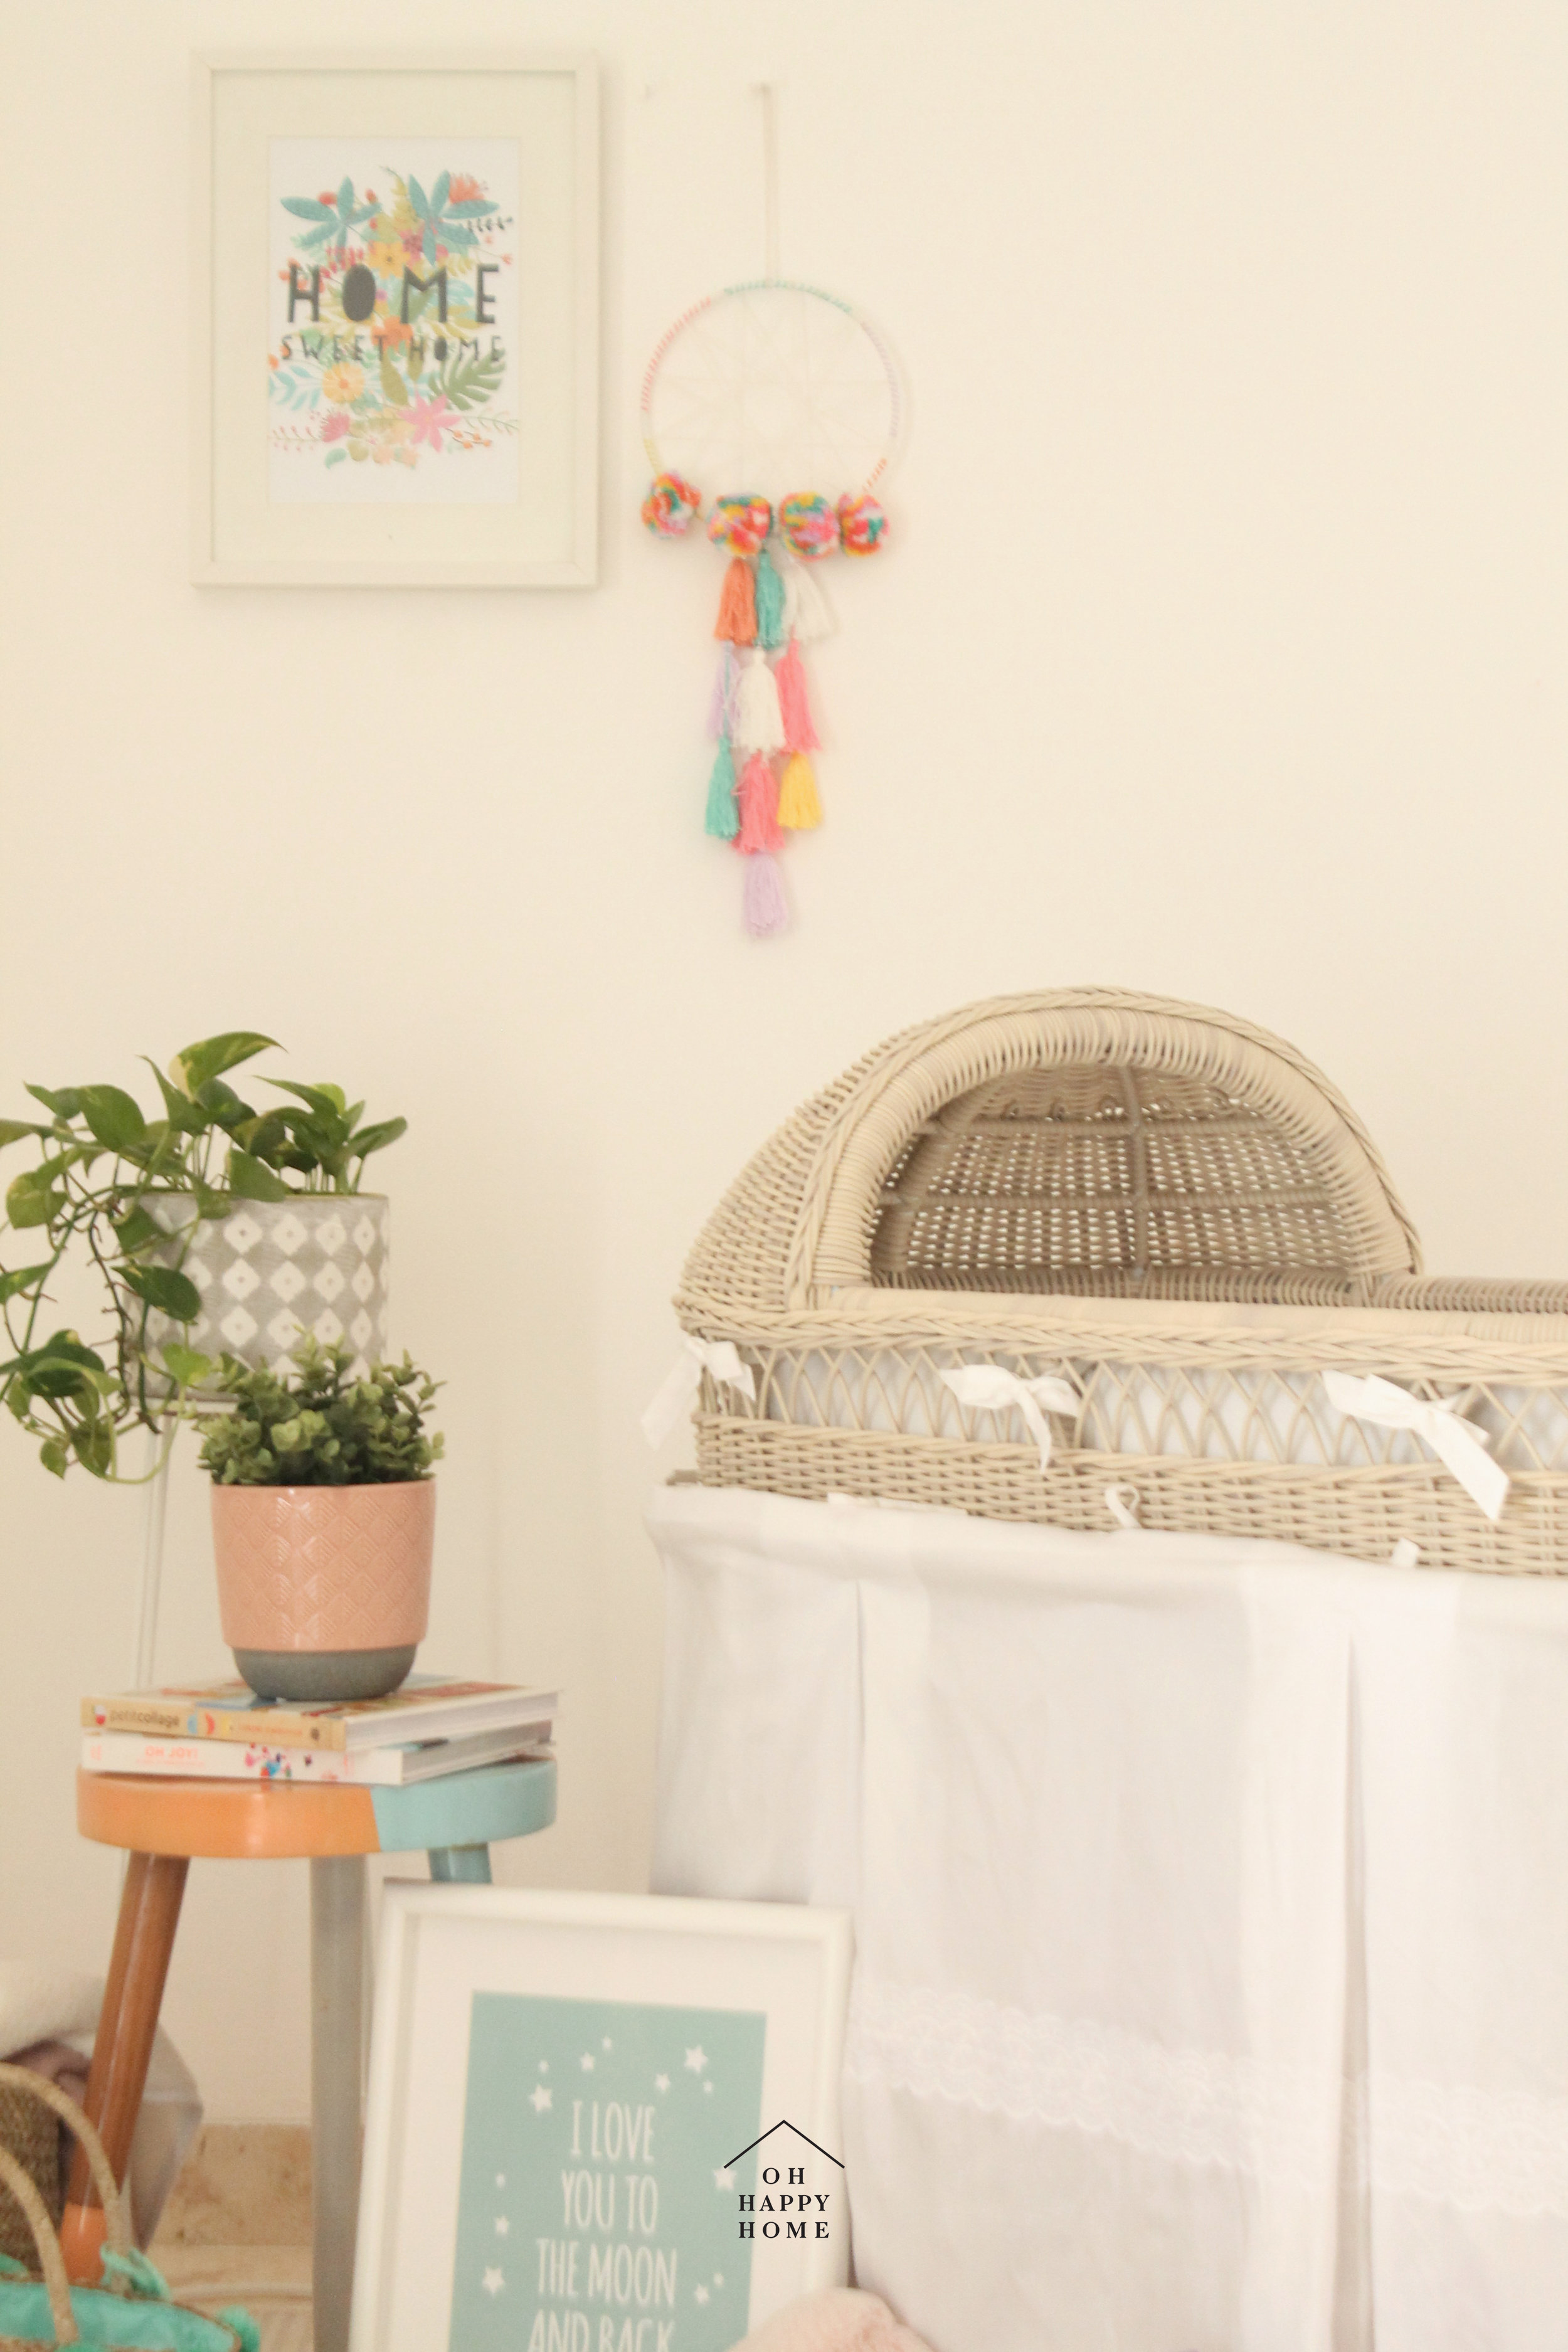 Moses Basket by La Cottonier - Available at Babyloania